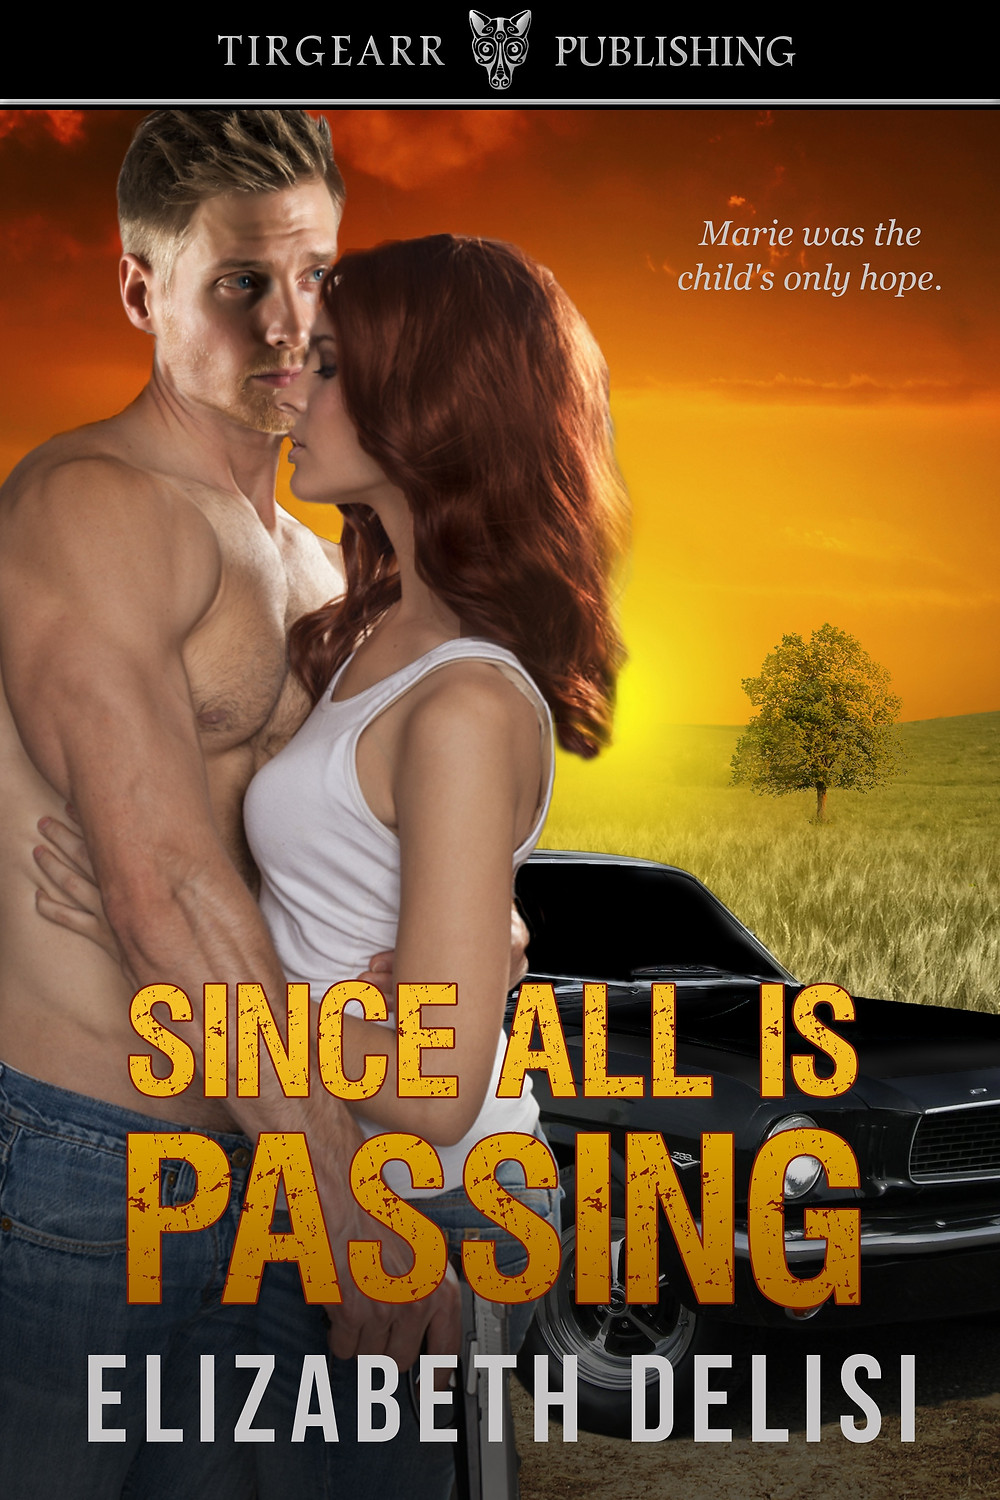 SINCE ALL IS PASSING by Elizabeth Delisi